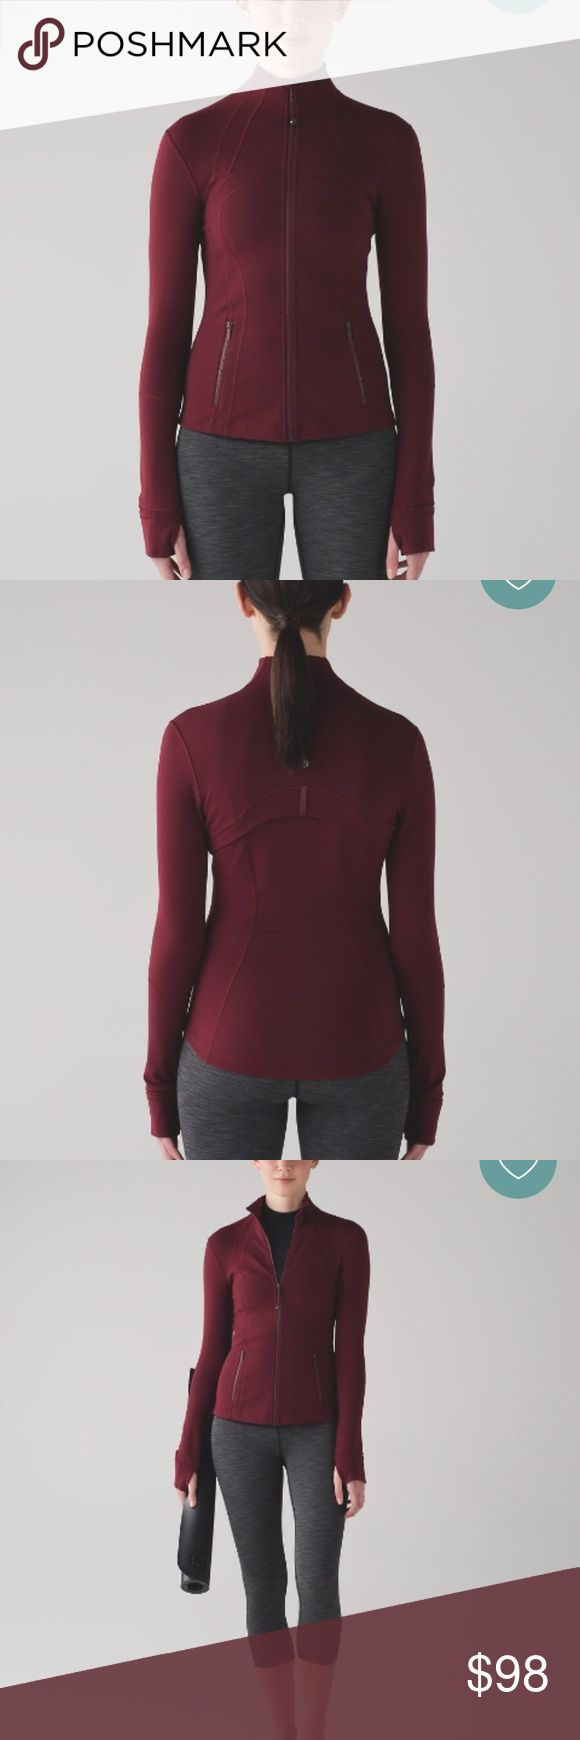 Lululemon define jacket in deep rouge Brand new define jacket in red rouge. I literally just pulled the tags off, tried it on, and my husband said he hates the color on me😩 So it was on for 30 seconds. You should buy it from me bc it's gorgeous and saves you a lot of money. I have sold 1,050 listings so I'm a trusted seller!!! lululemon athletica Jackets & Coats